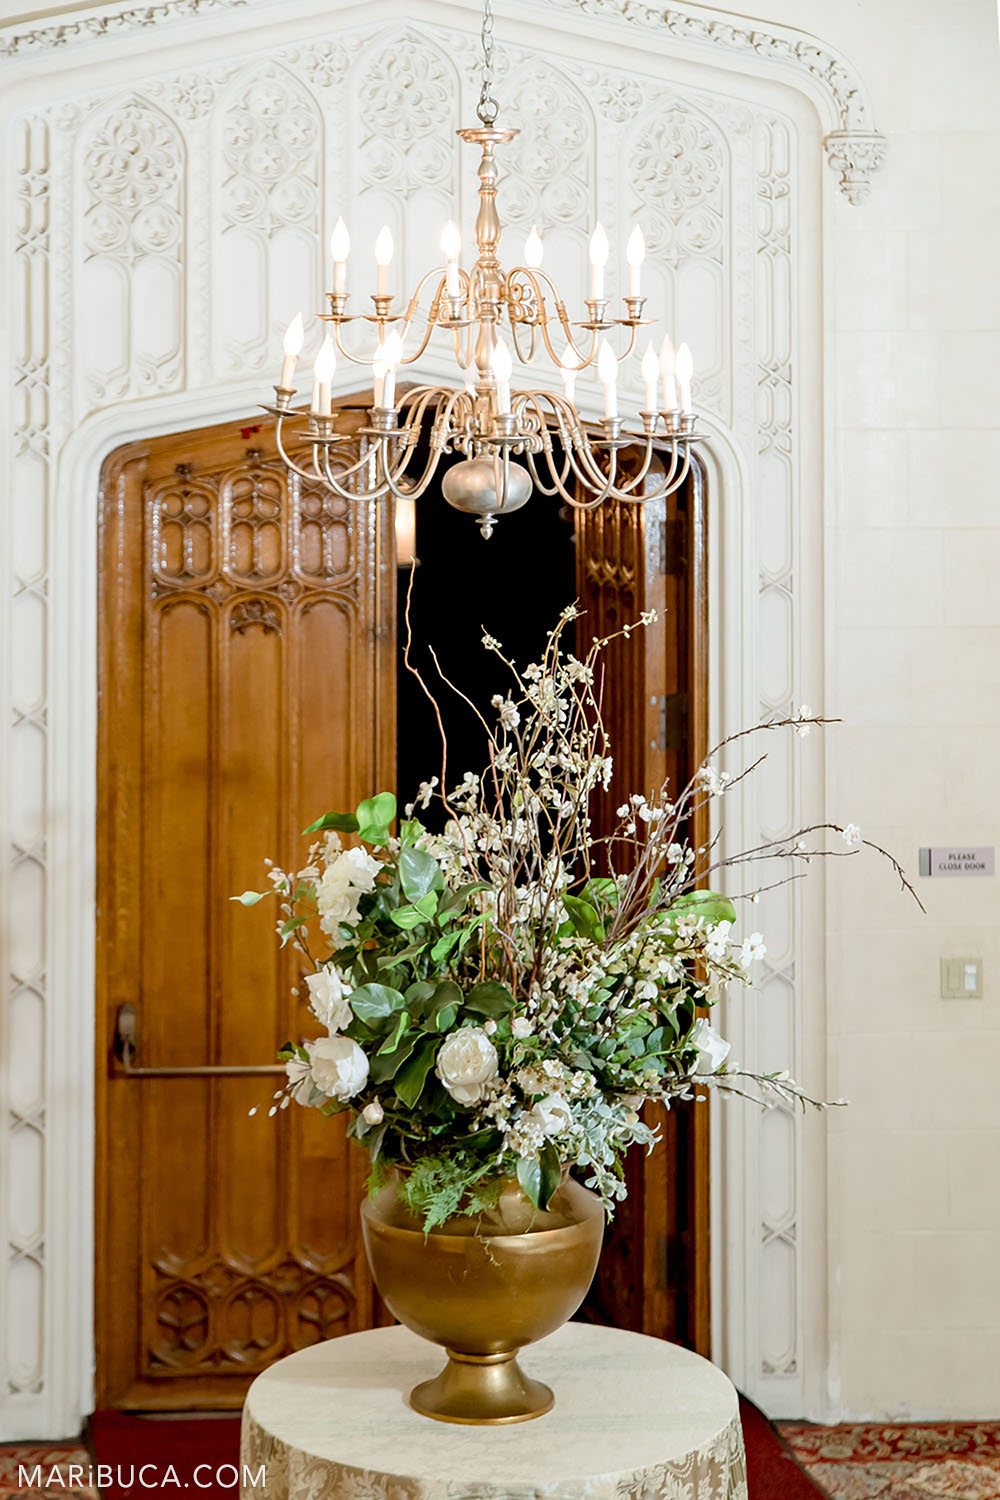 Entry Hall has beautiful white walls, big white flowers and chandelier, Kohl Mansion, Burlingame